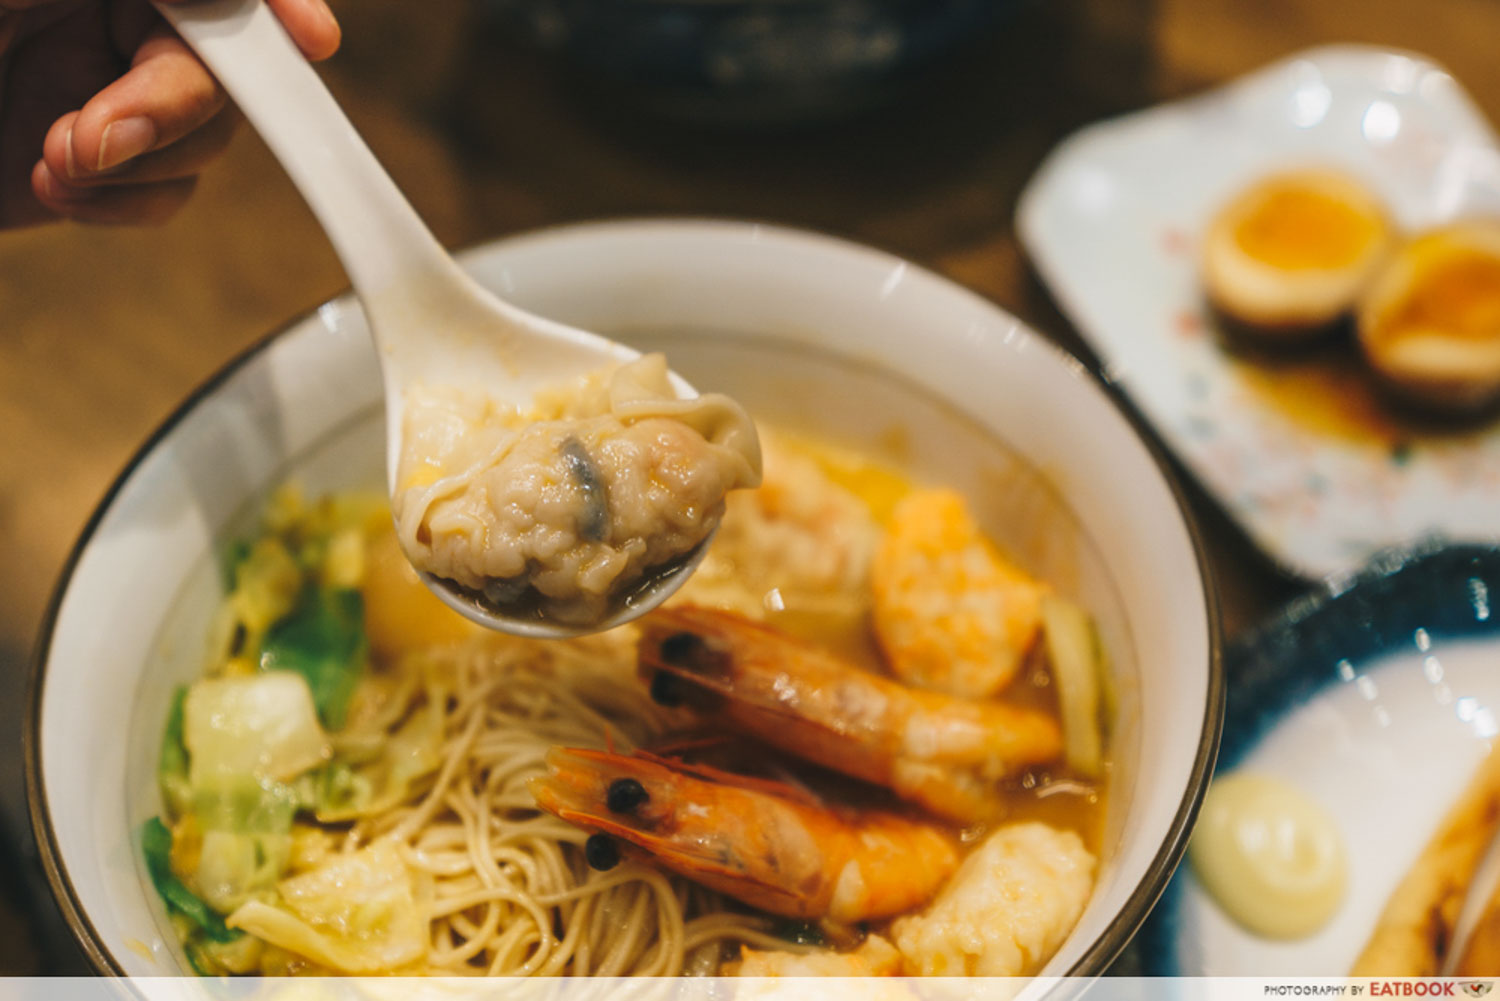 Le Shrimp Ramen - Prawn Dumplings